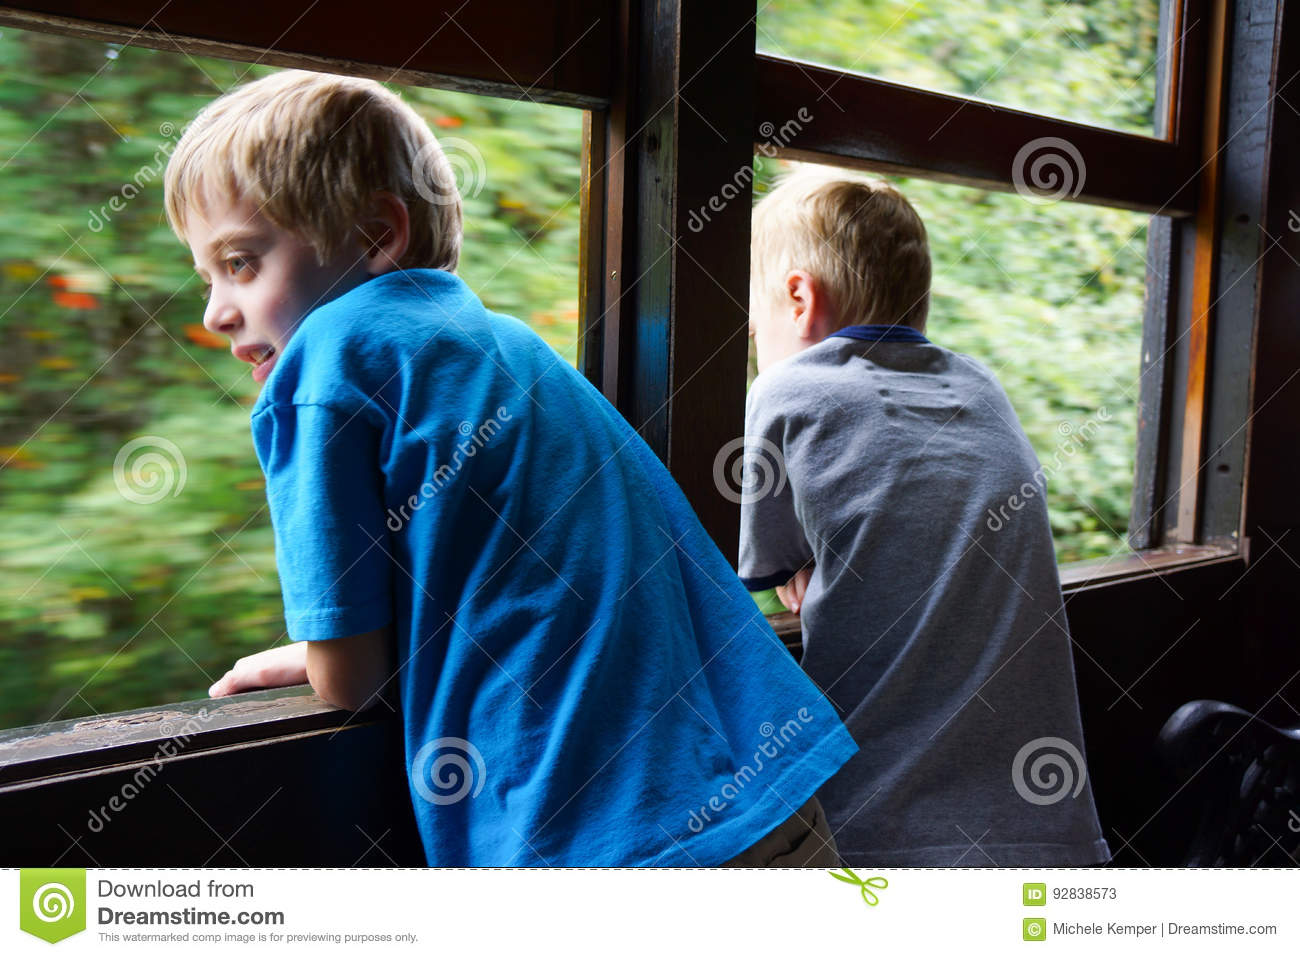 Young boys looking out train window